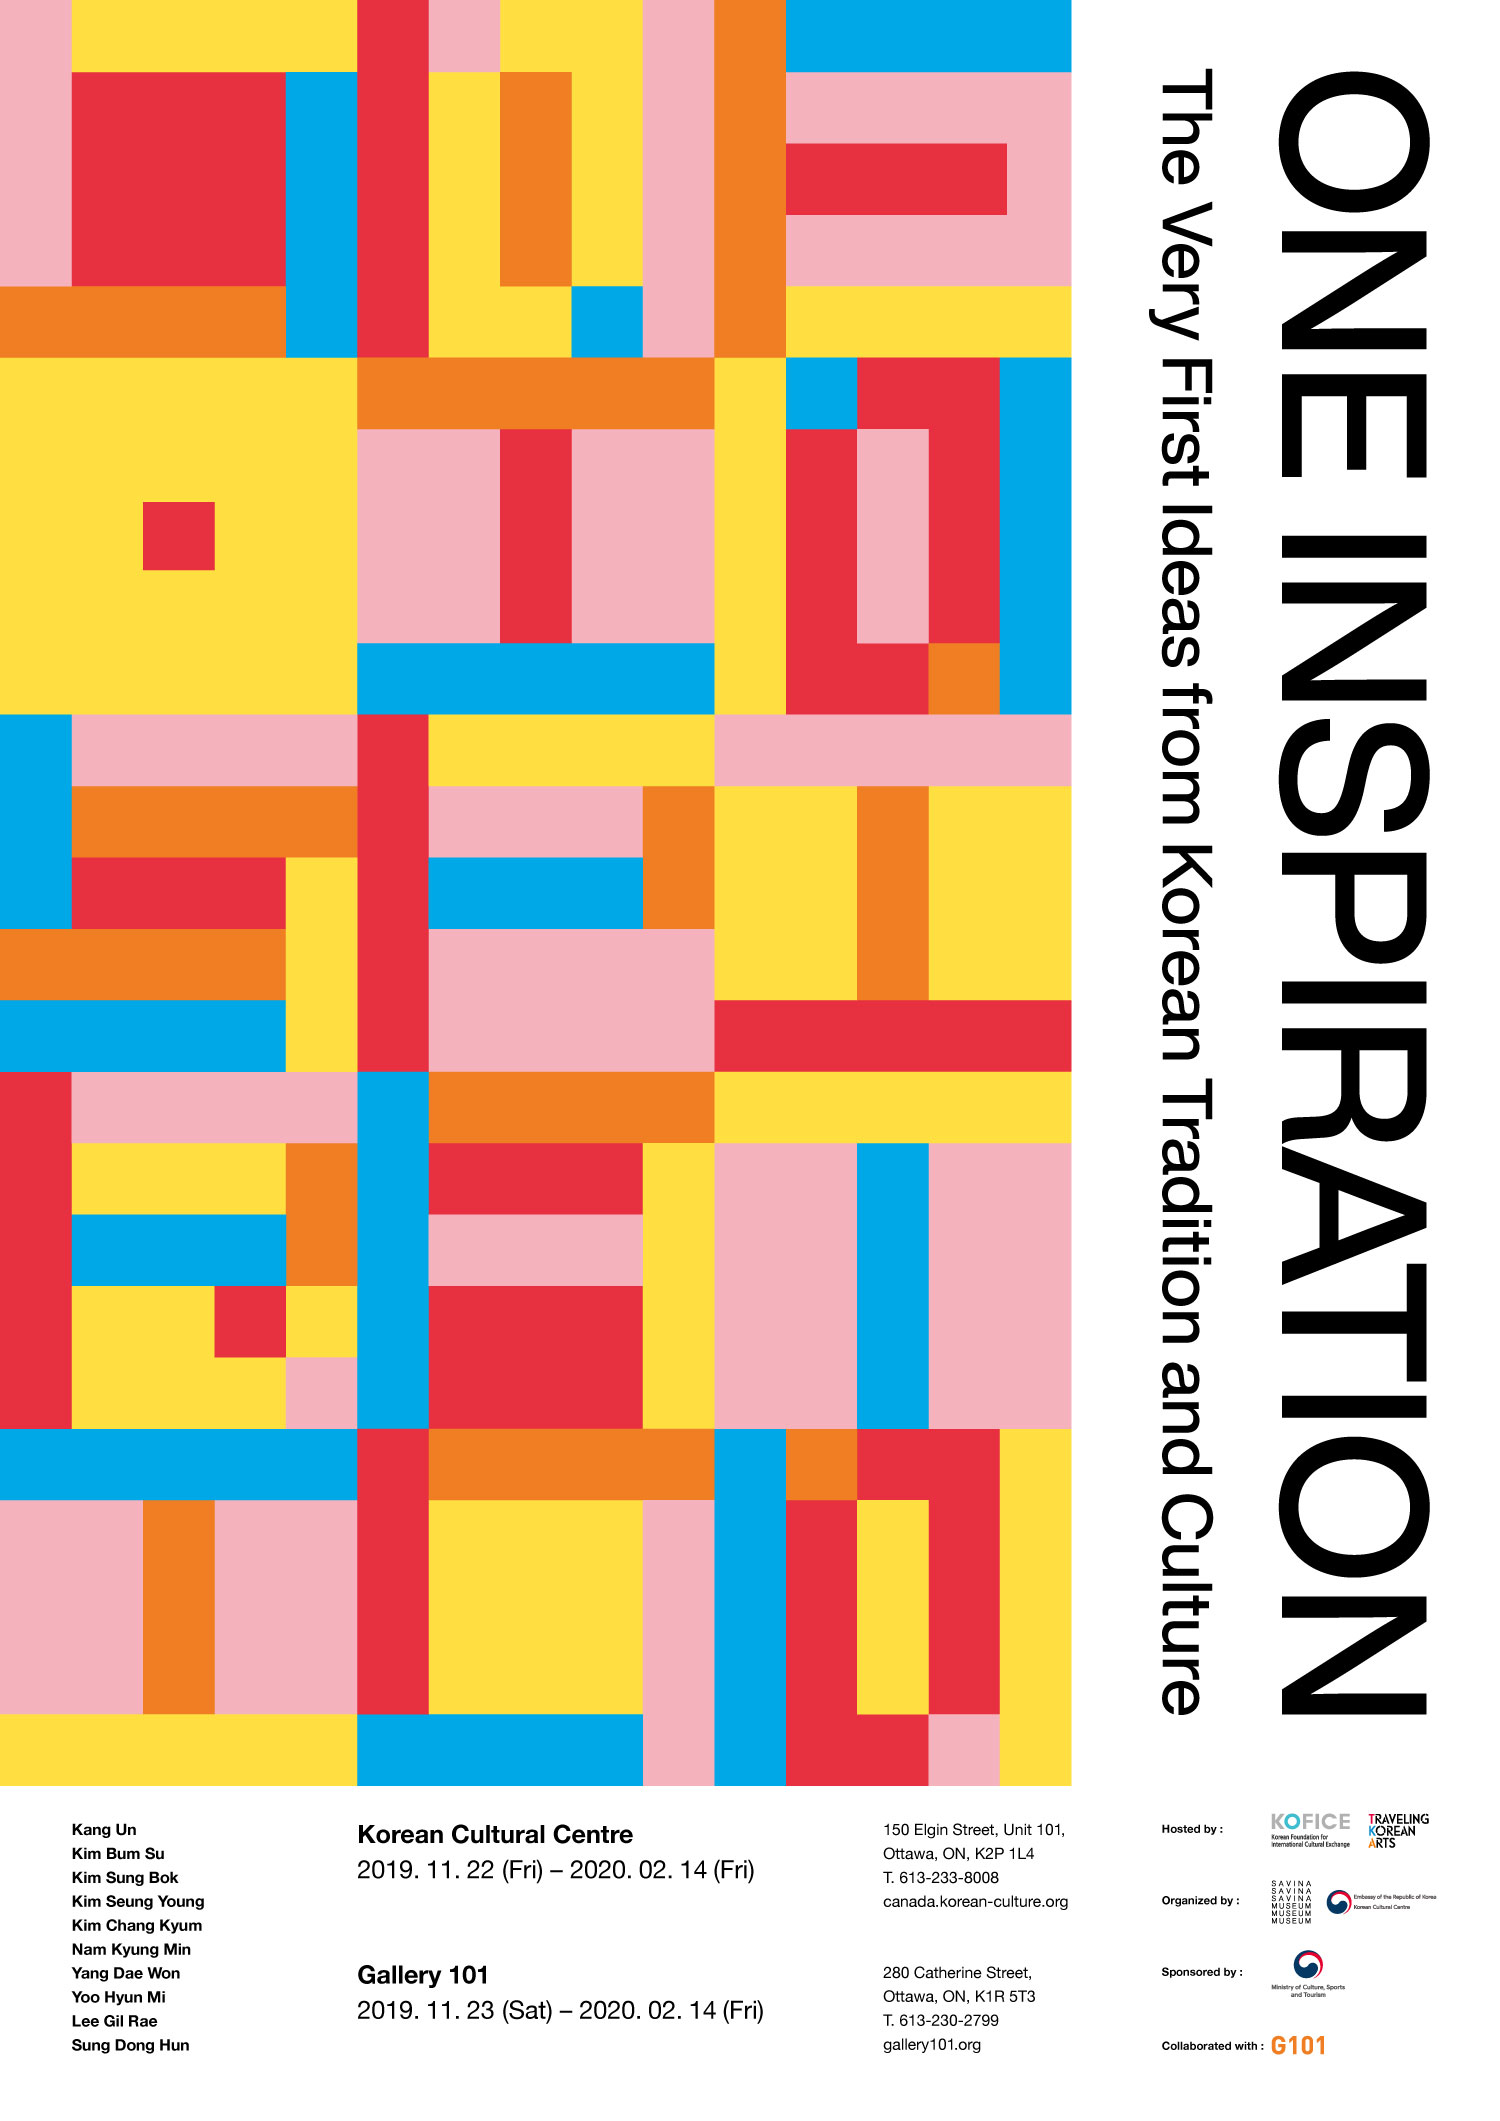 One Inspiration Exhibition Poster courtesy of the Korean Cultural Centre